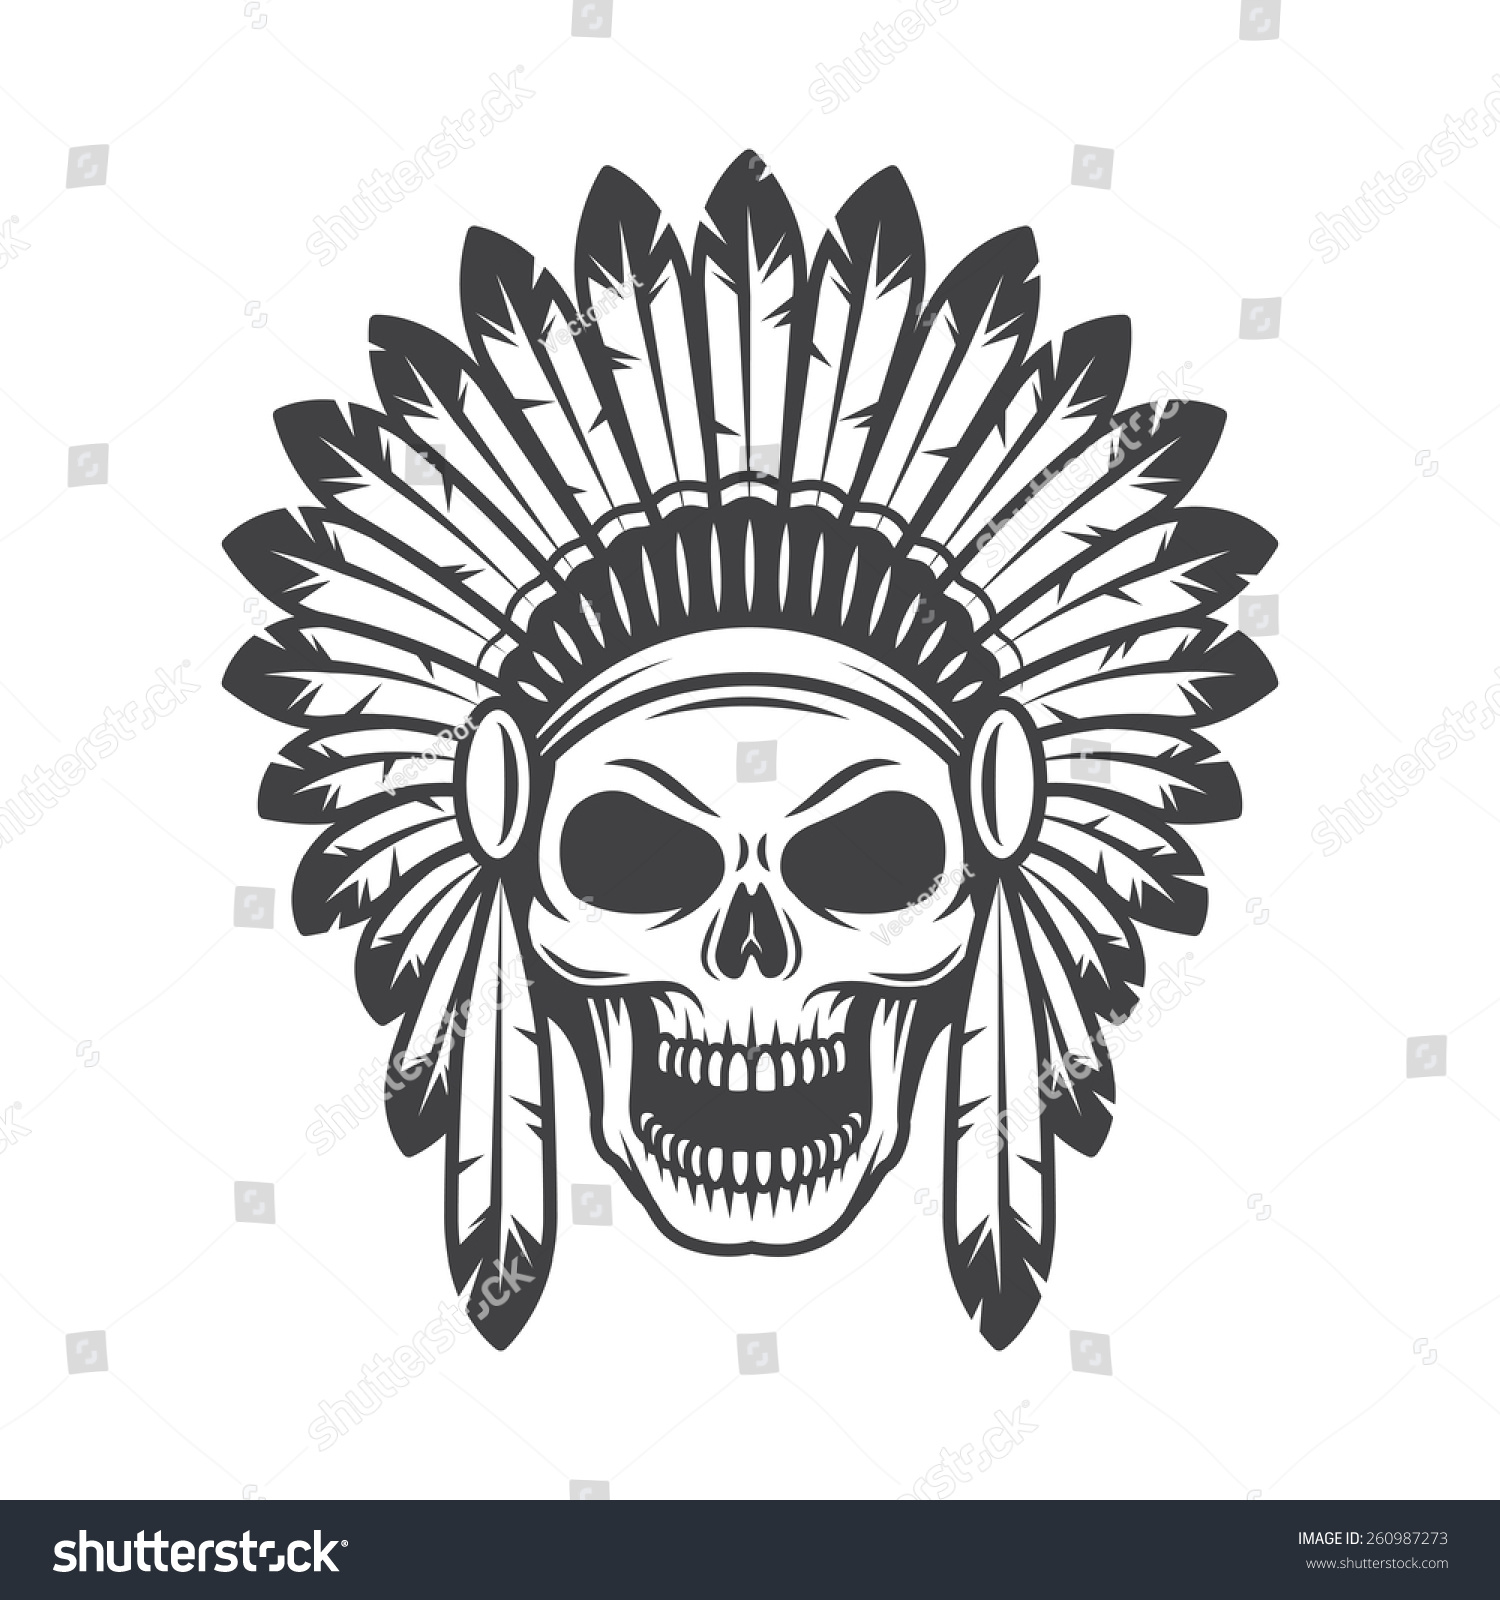 Galerry illustration with native american indian chief headdress